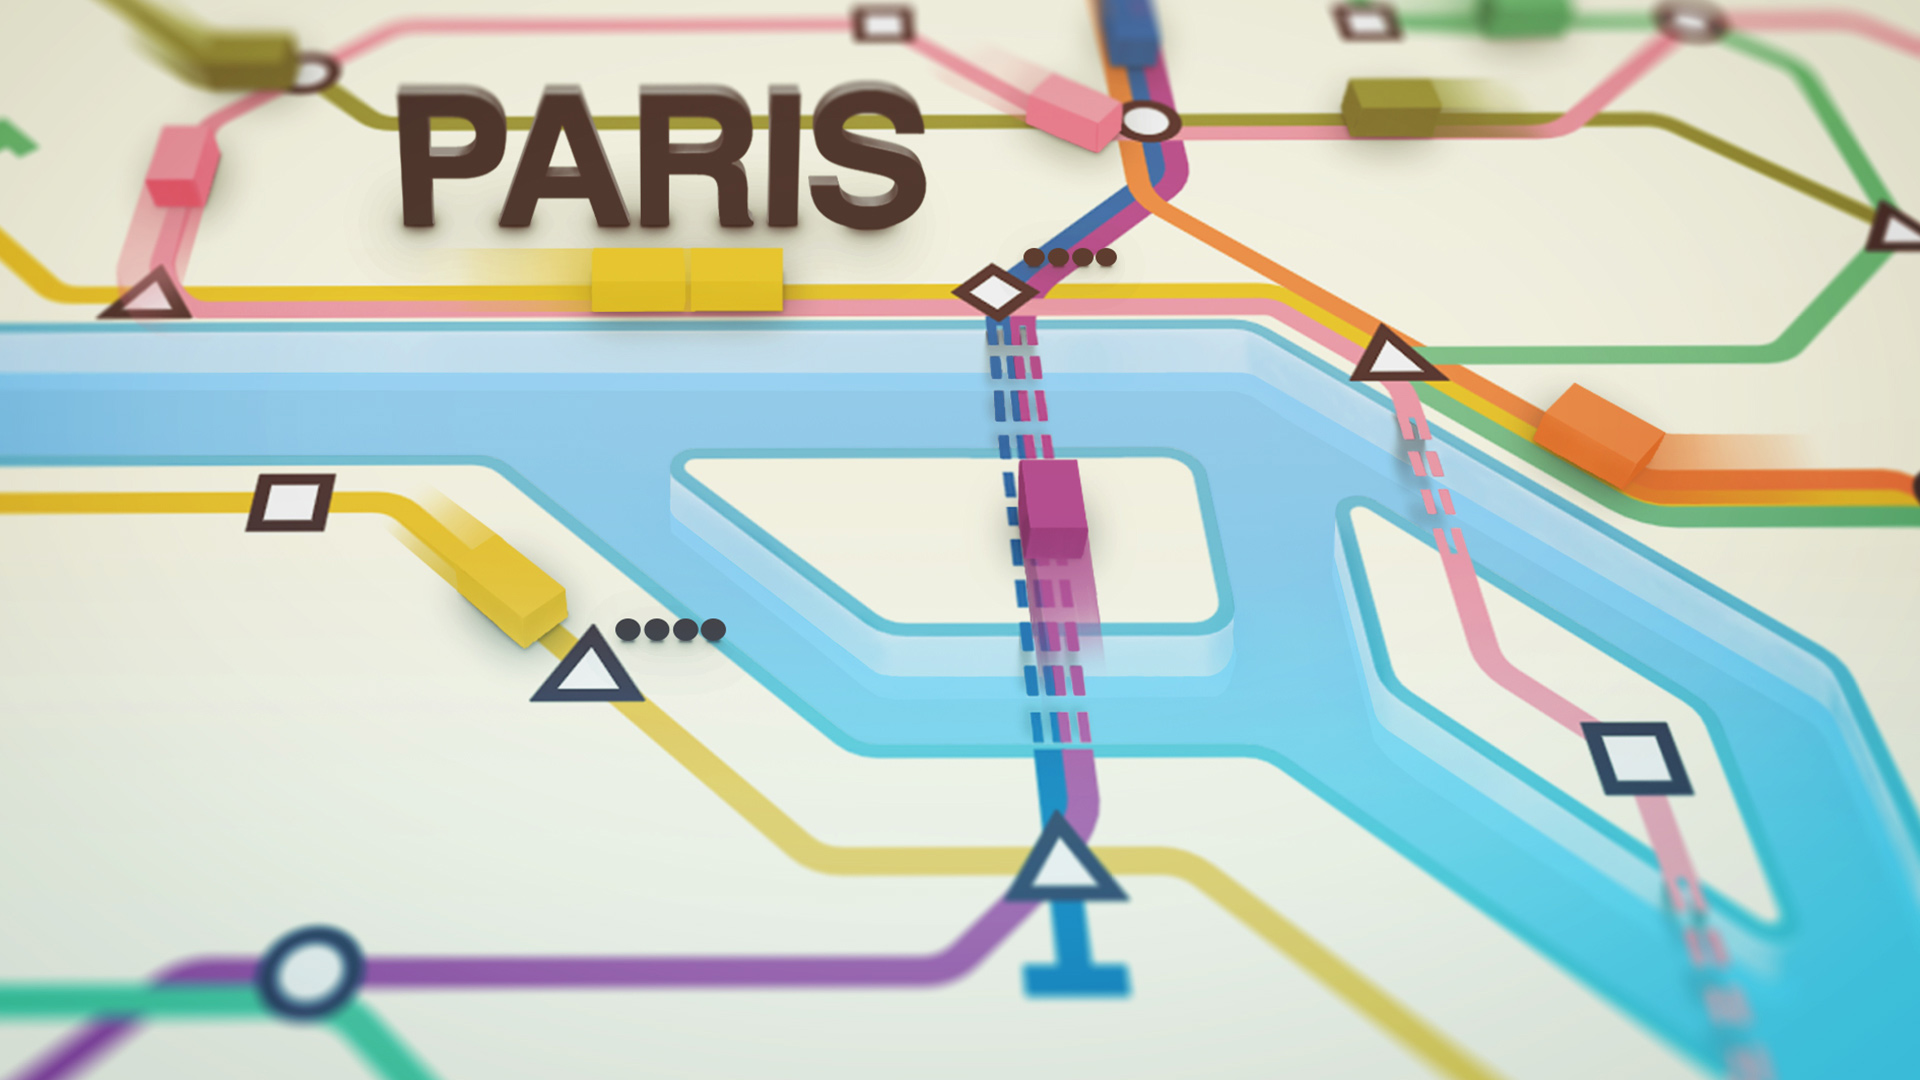 Download - Mini Metro v2.0.2 Hack Mod Android Apk  androidbit